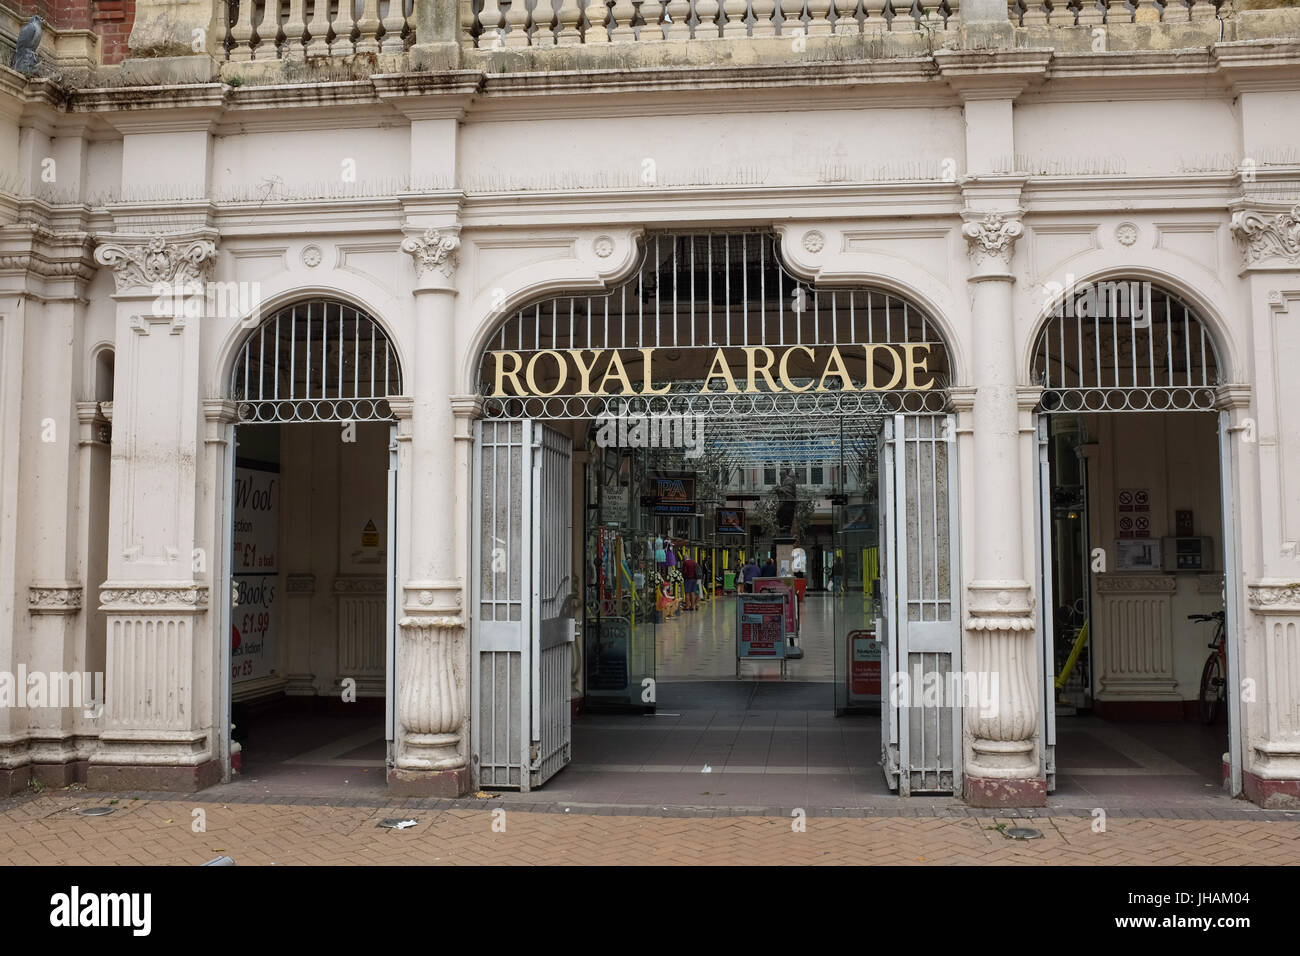 The entrance to the Royal Arcade shopping arcade in Boscombe, near Bournemouth, Dorset, England. - Stock Image